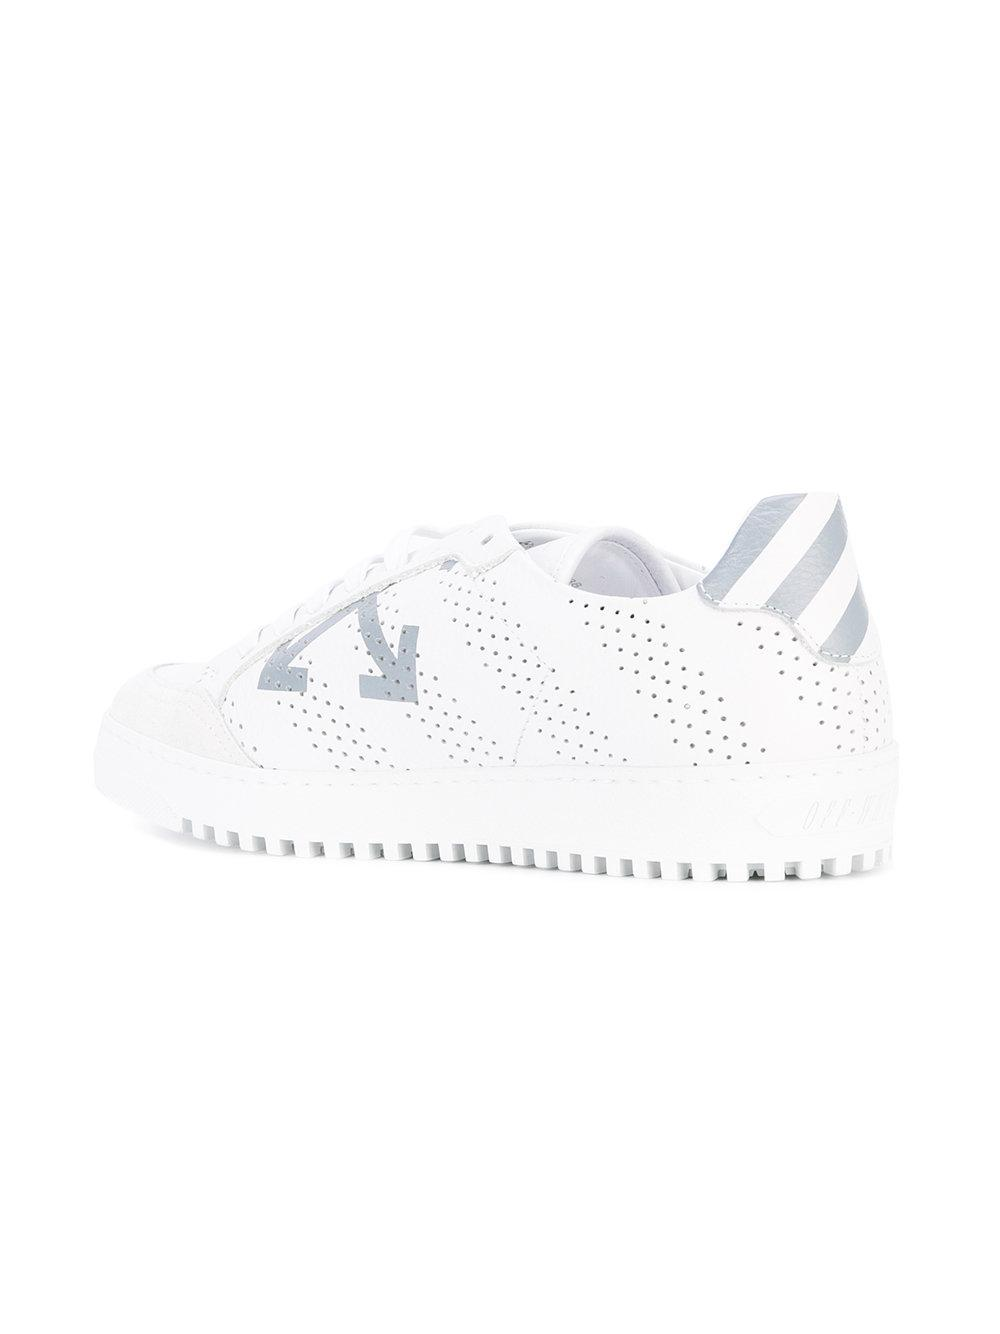 Off-White c/o Virgil Abloh Leather Perforated Arrow Sneakers in White